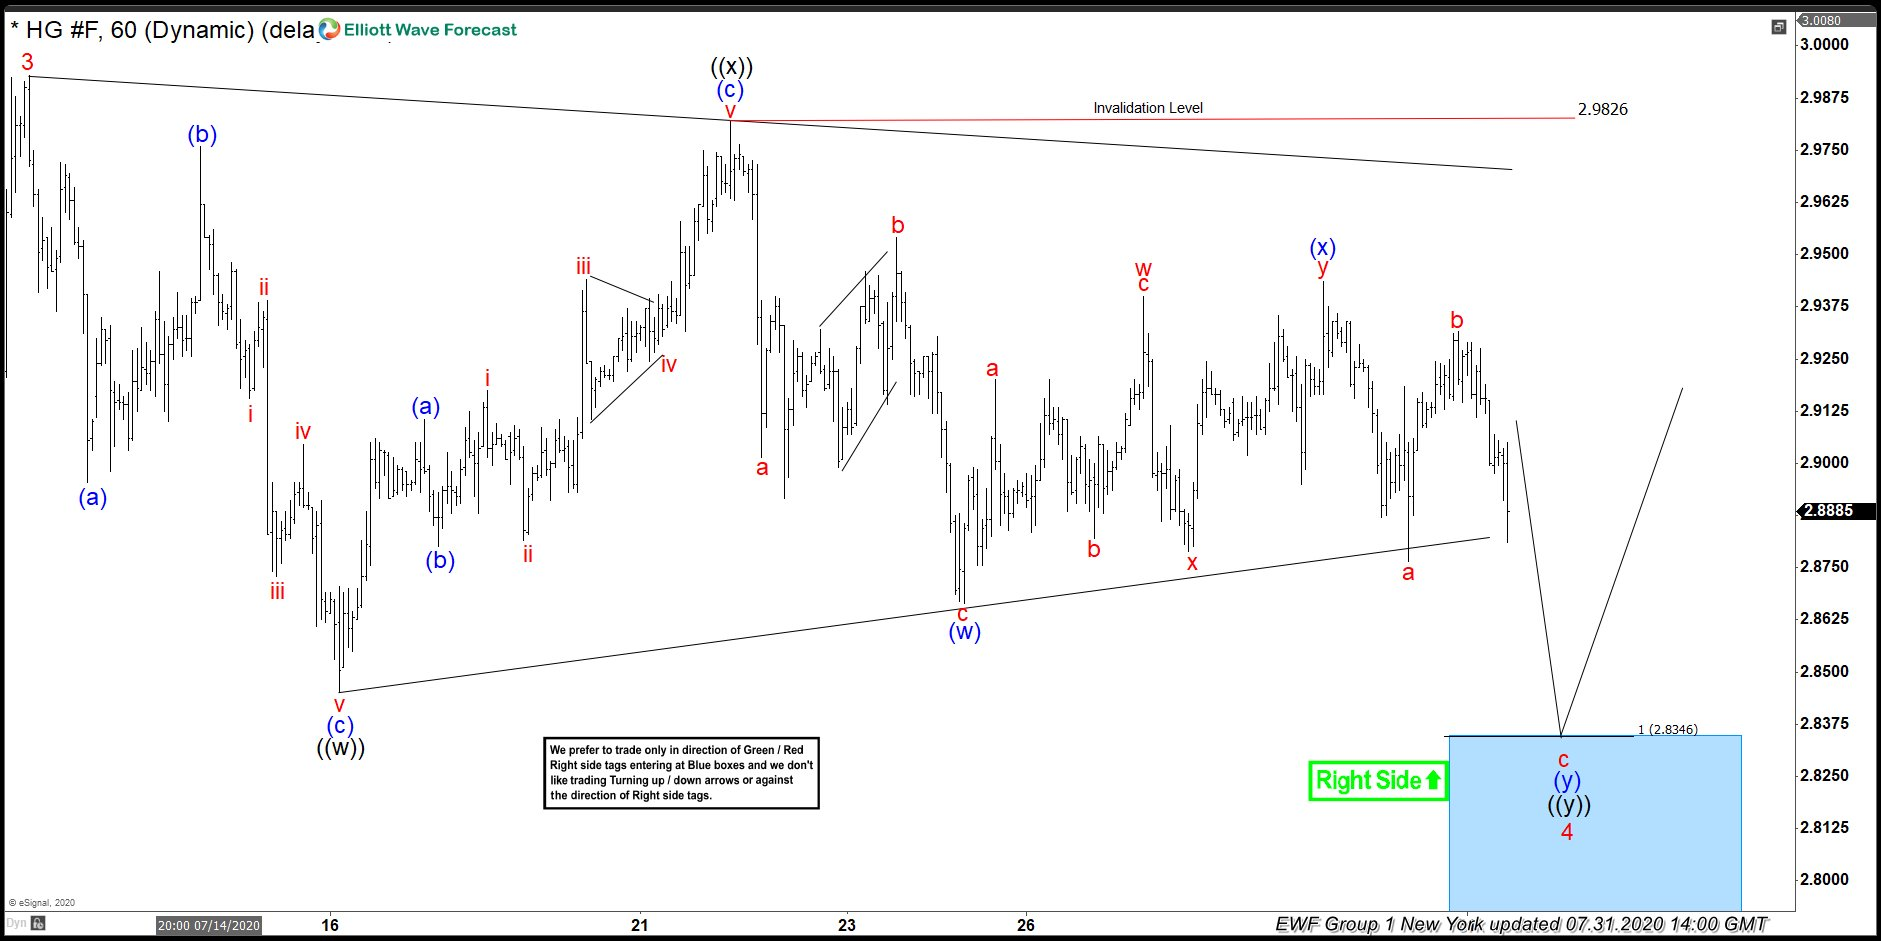 COPPER ($HG_F) Buying The Dips After Elliott Wave Double Three Pattern